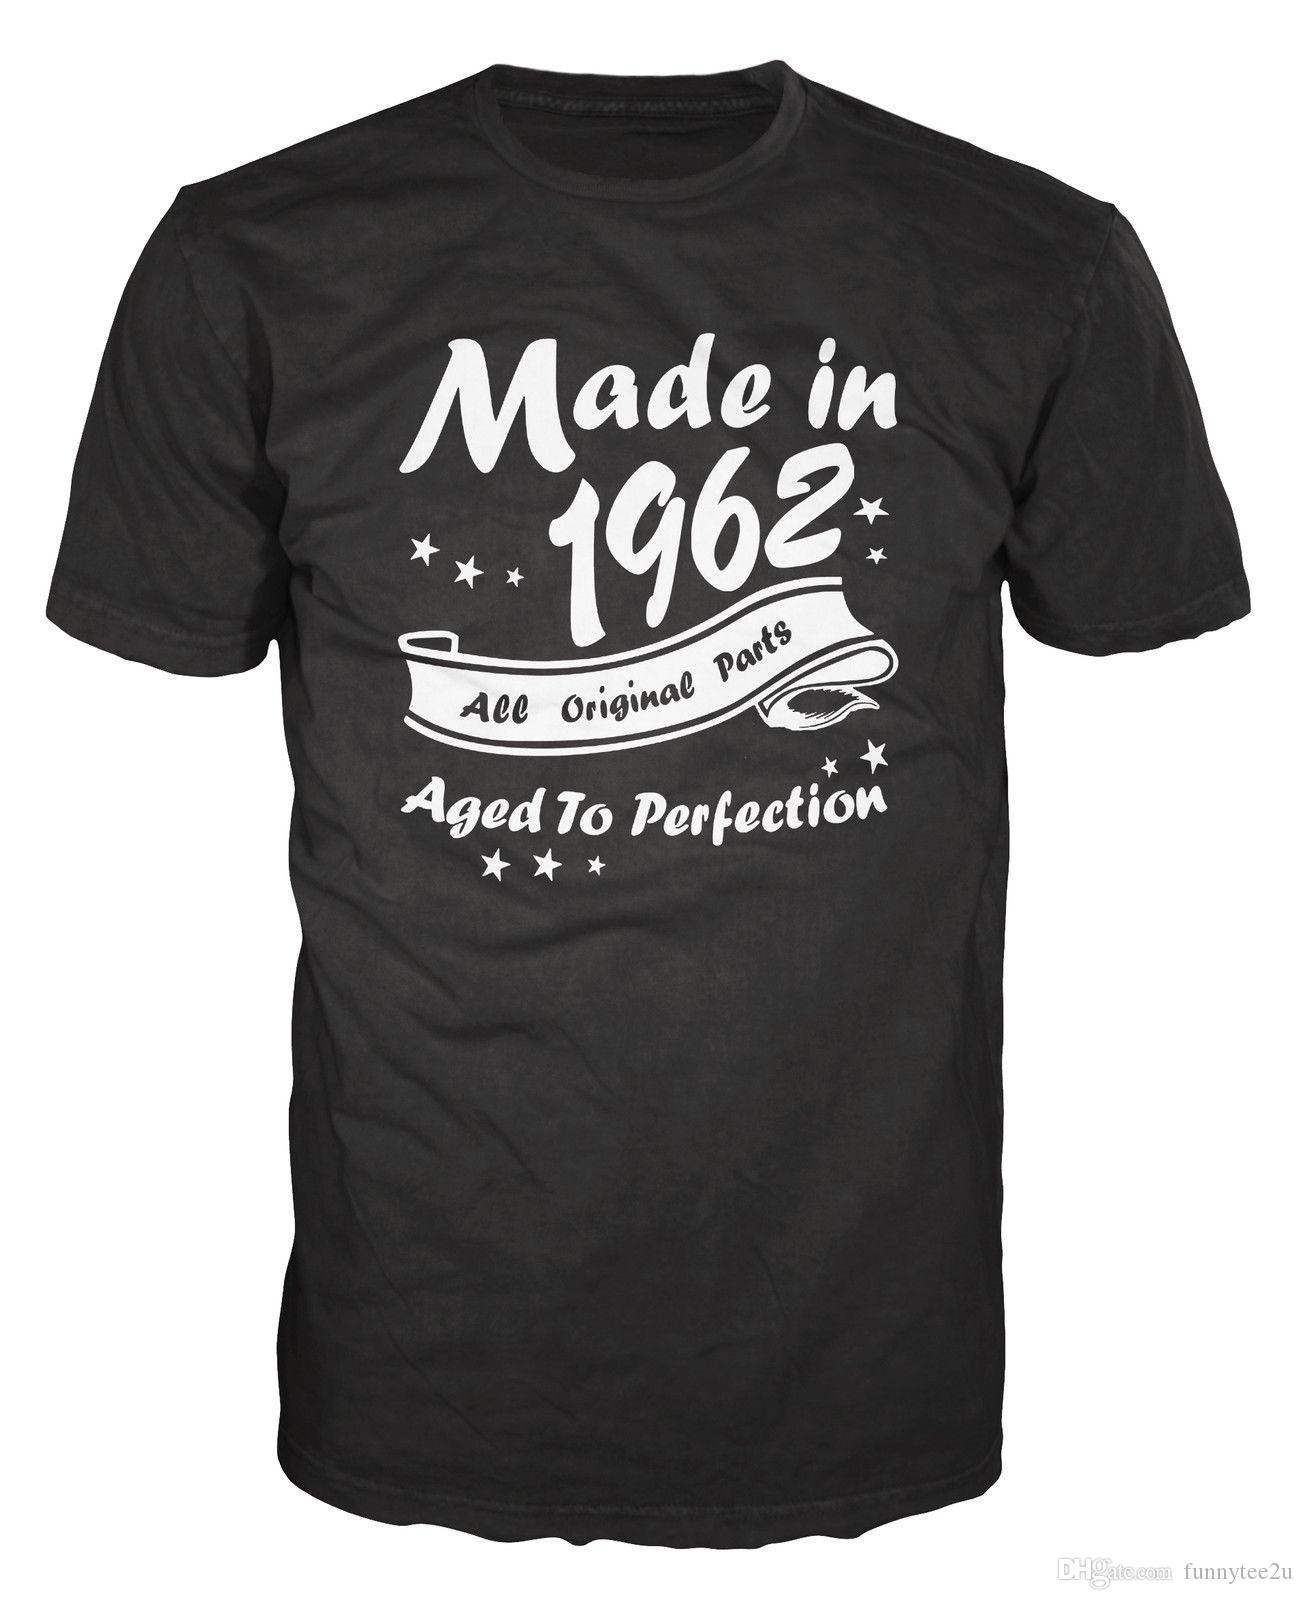 Made In 1962 All Original Parts Funny Birthday Anniversary Party T Shirt MenS Great Short Sleeve Crewneck Cotton Big Size Couple Ts Cool Tee Shirts